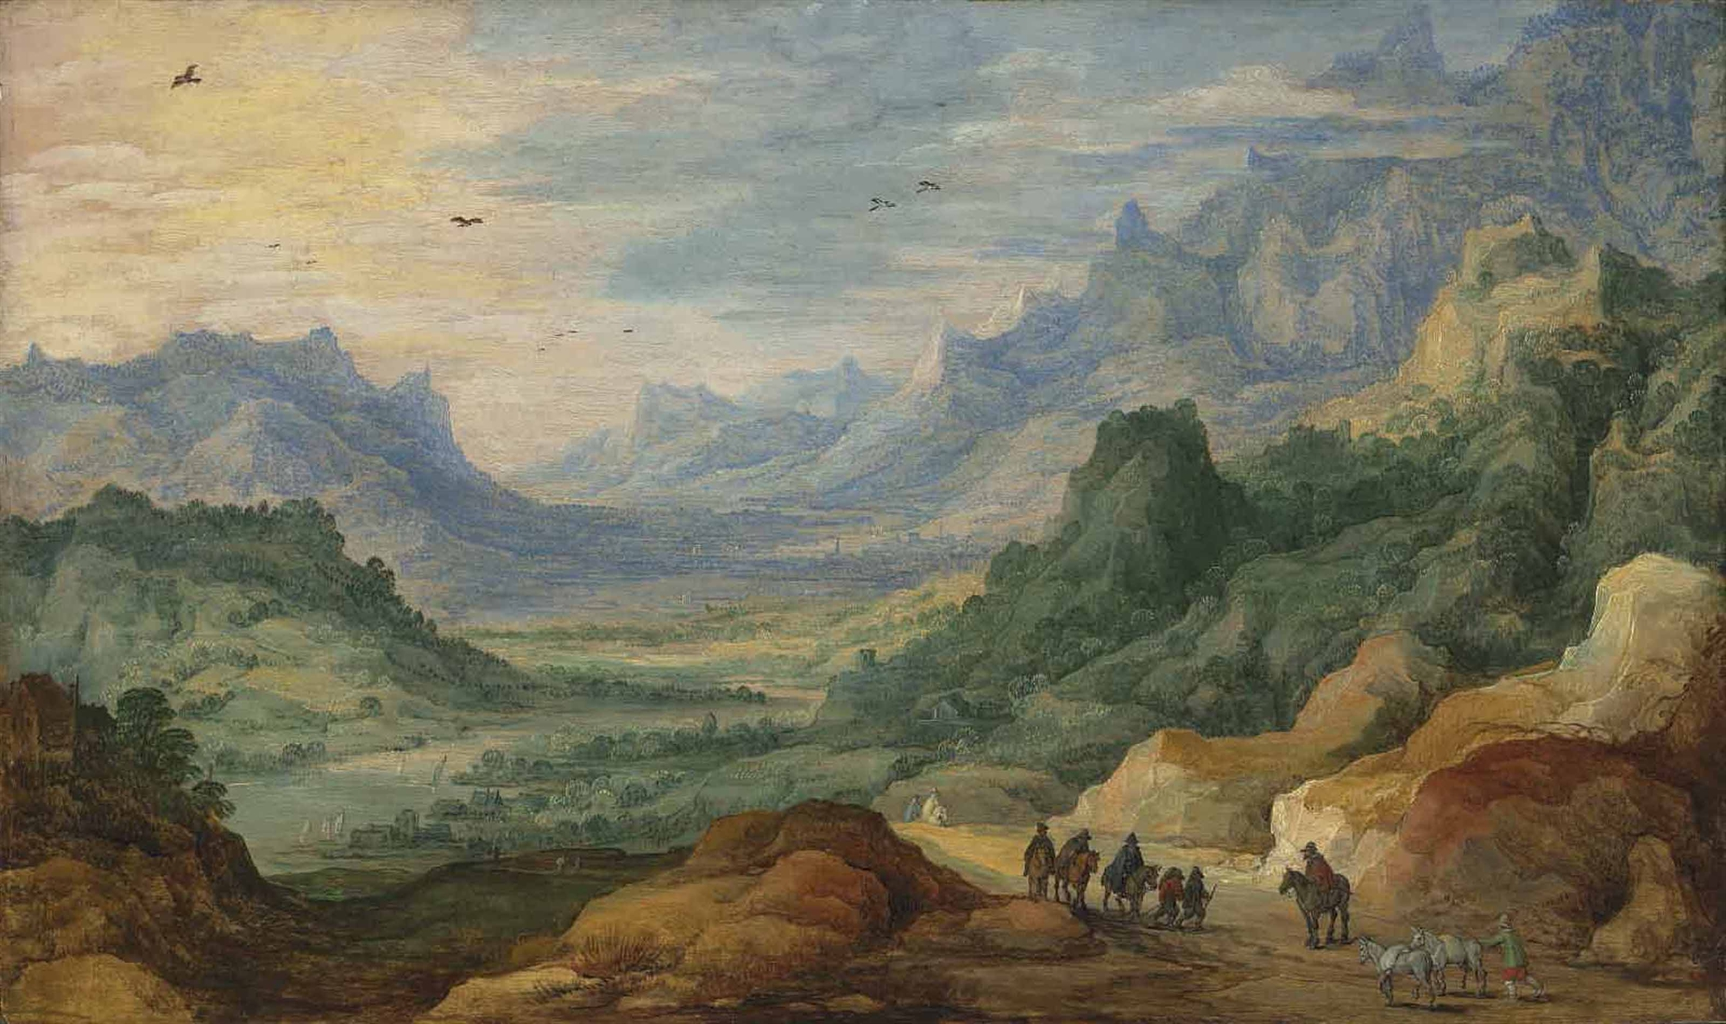 A mountainous landscape with travellers and herdsmen on a path